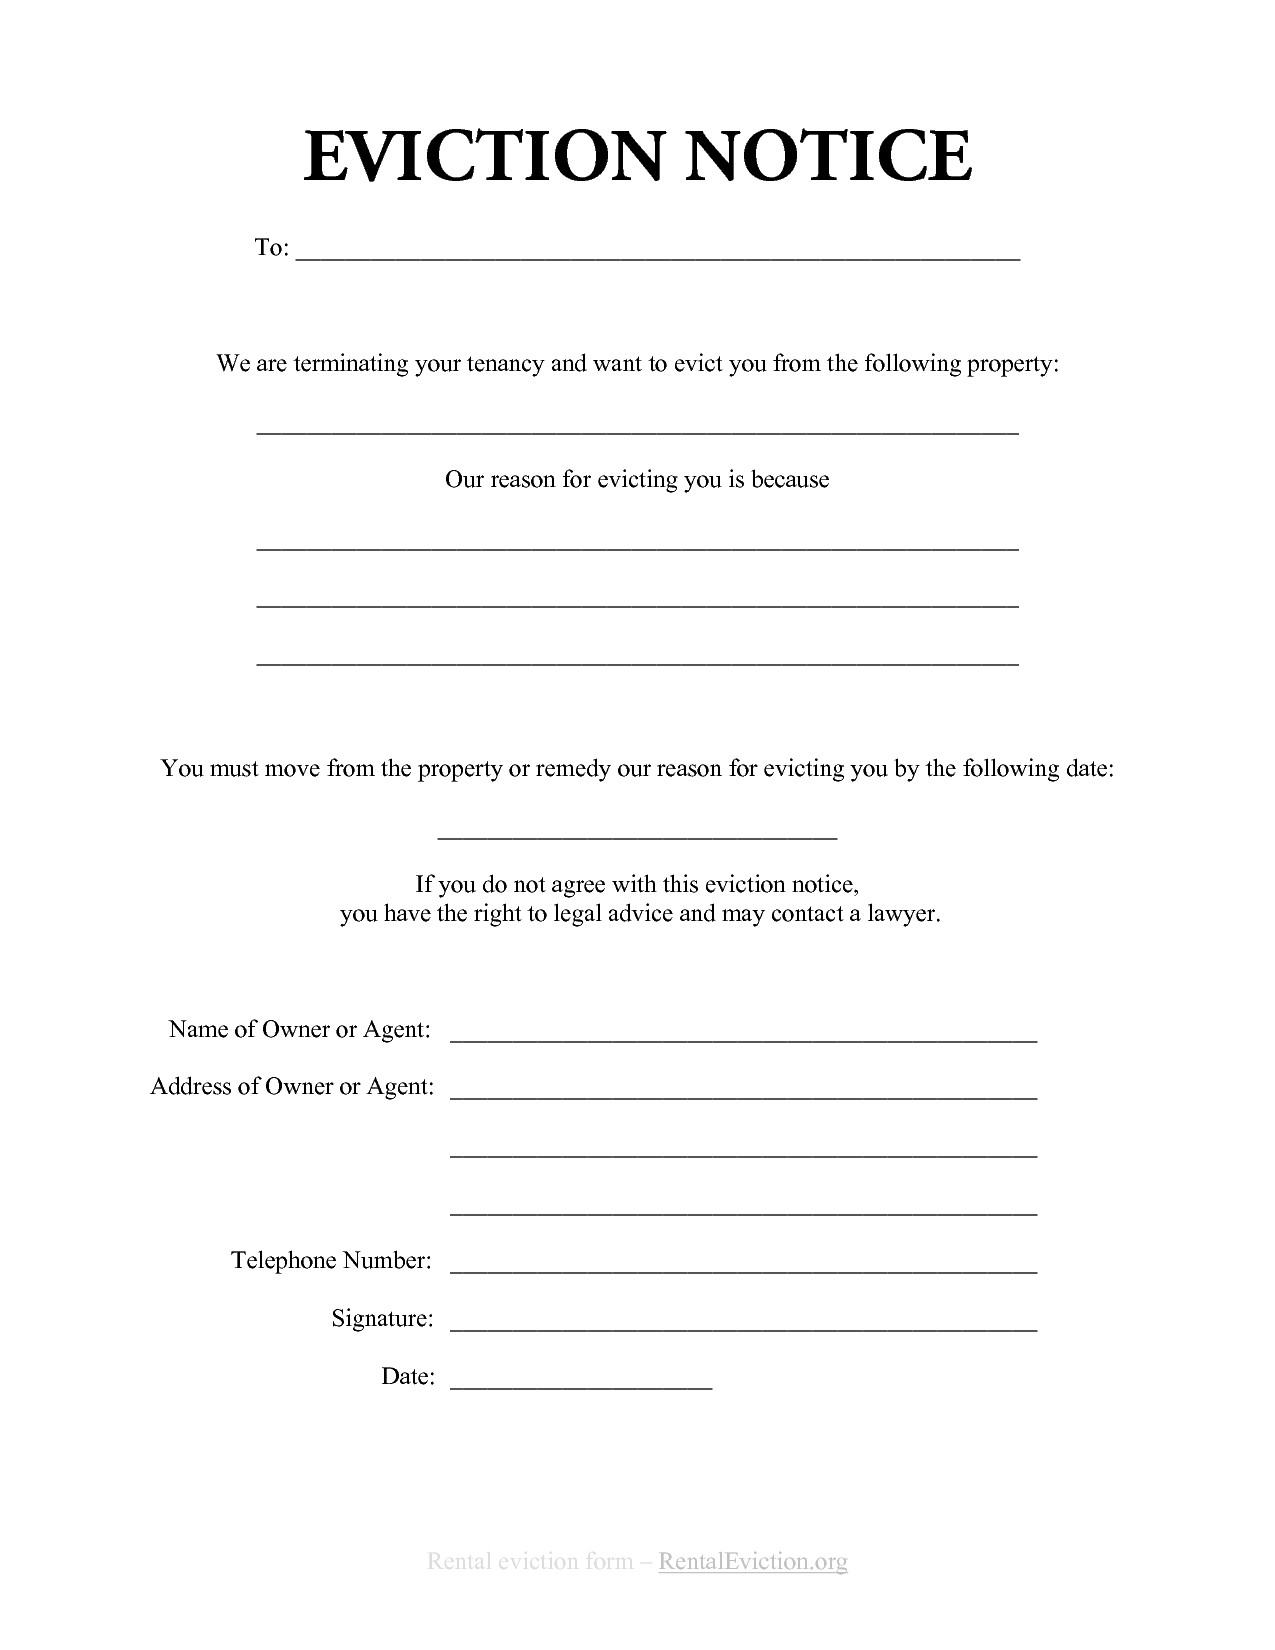 Eviction Letter Template Free - Eviction Notice Template Alberta Free